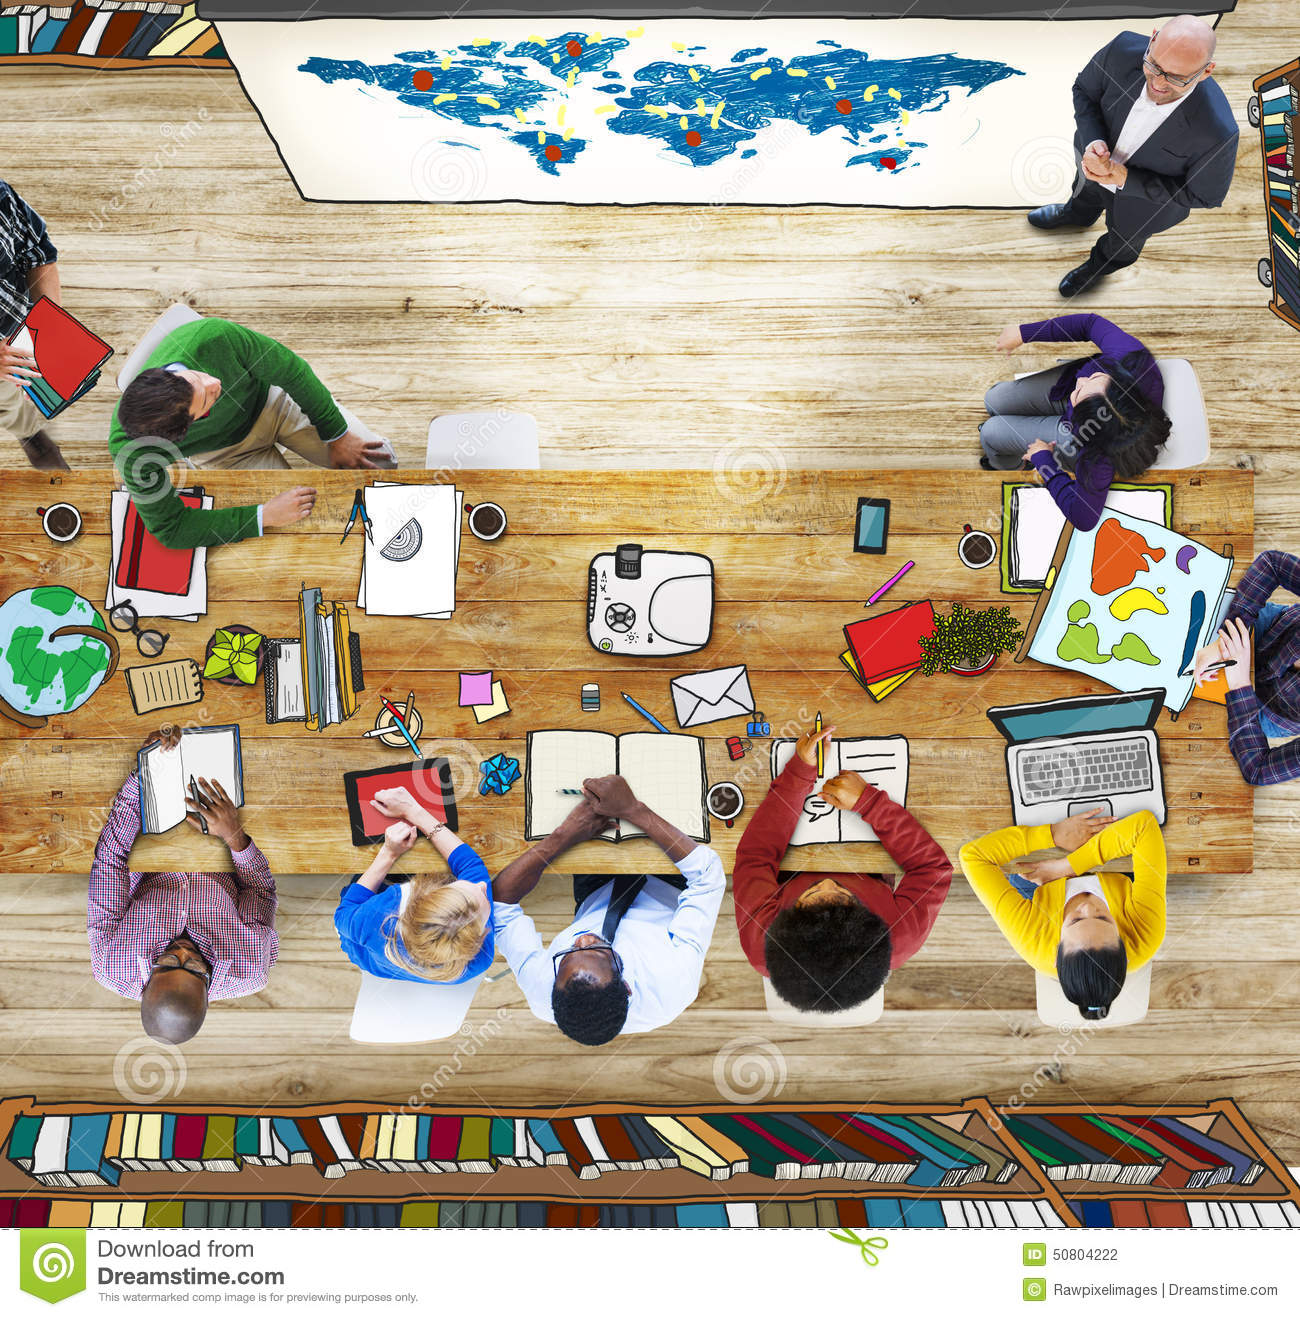 Classroom Aerial View People Learning Presentation World Map